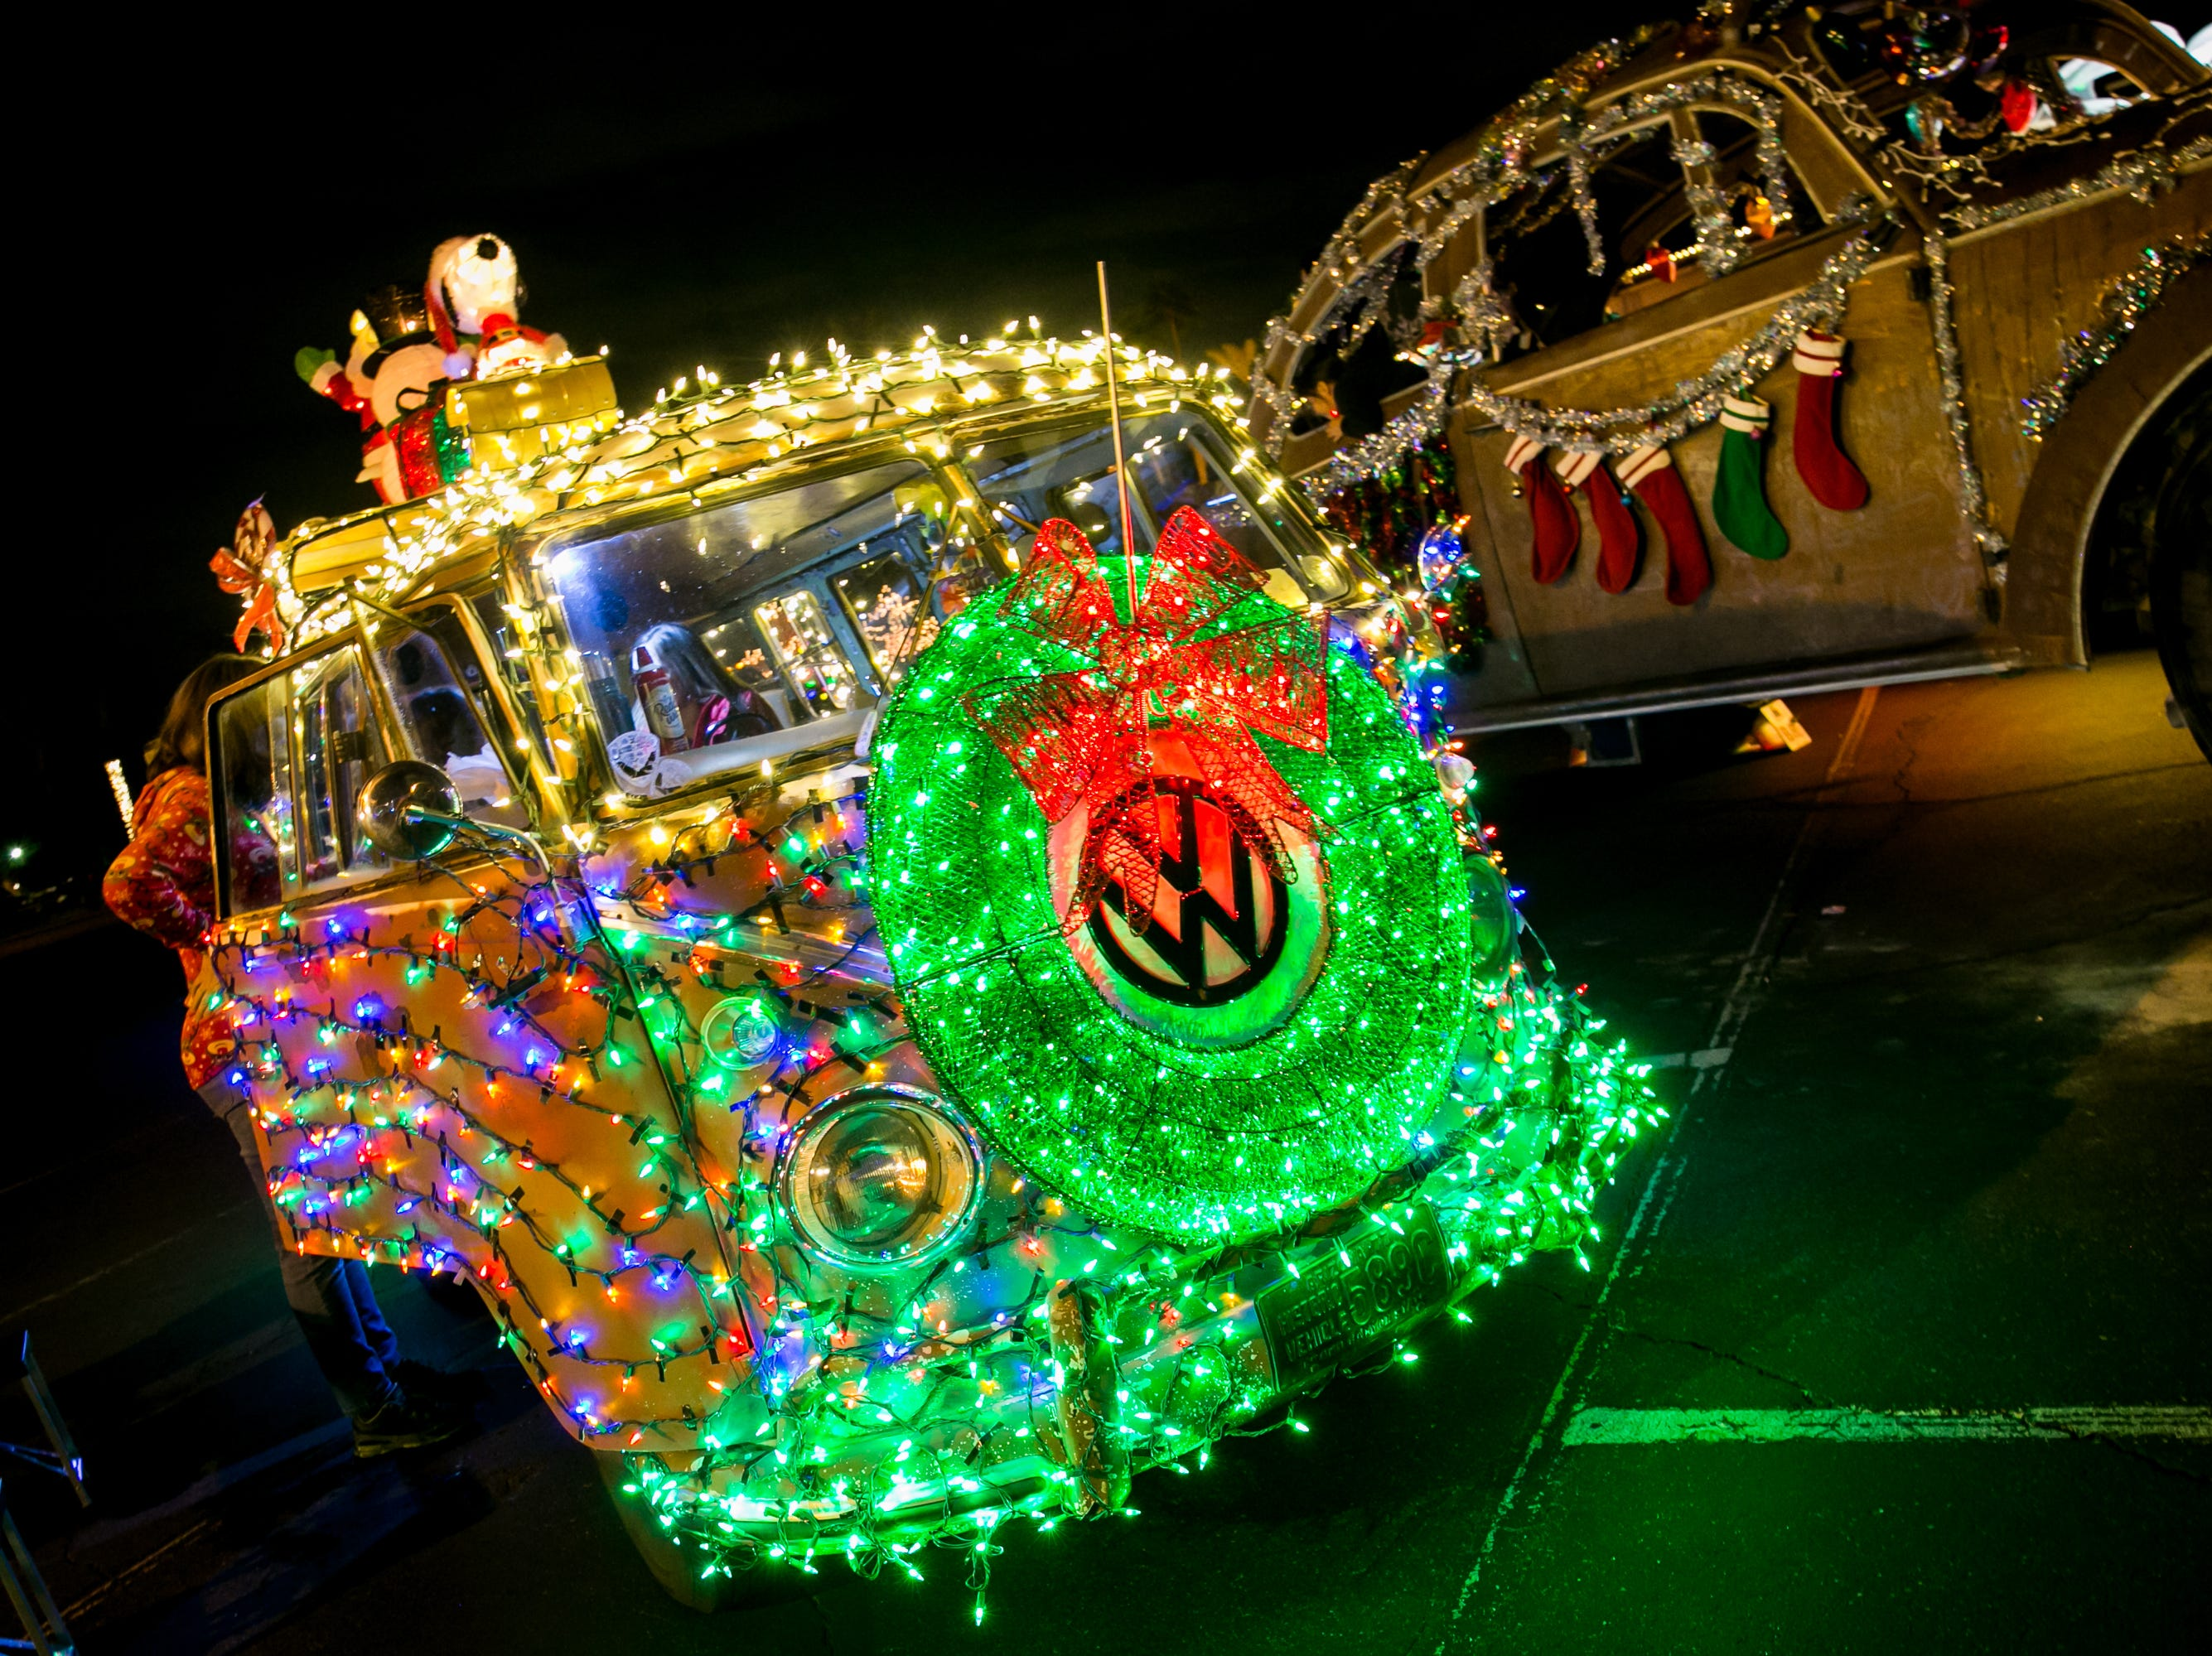 The VW buses looked awesome during the APS Electric Light Parade in Central Phoenix on Saturday, December 1, 2018.